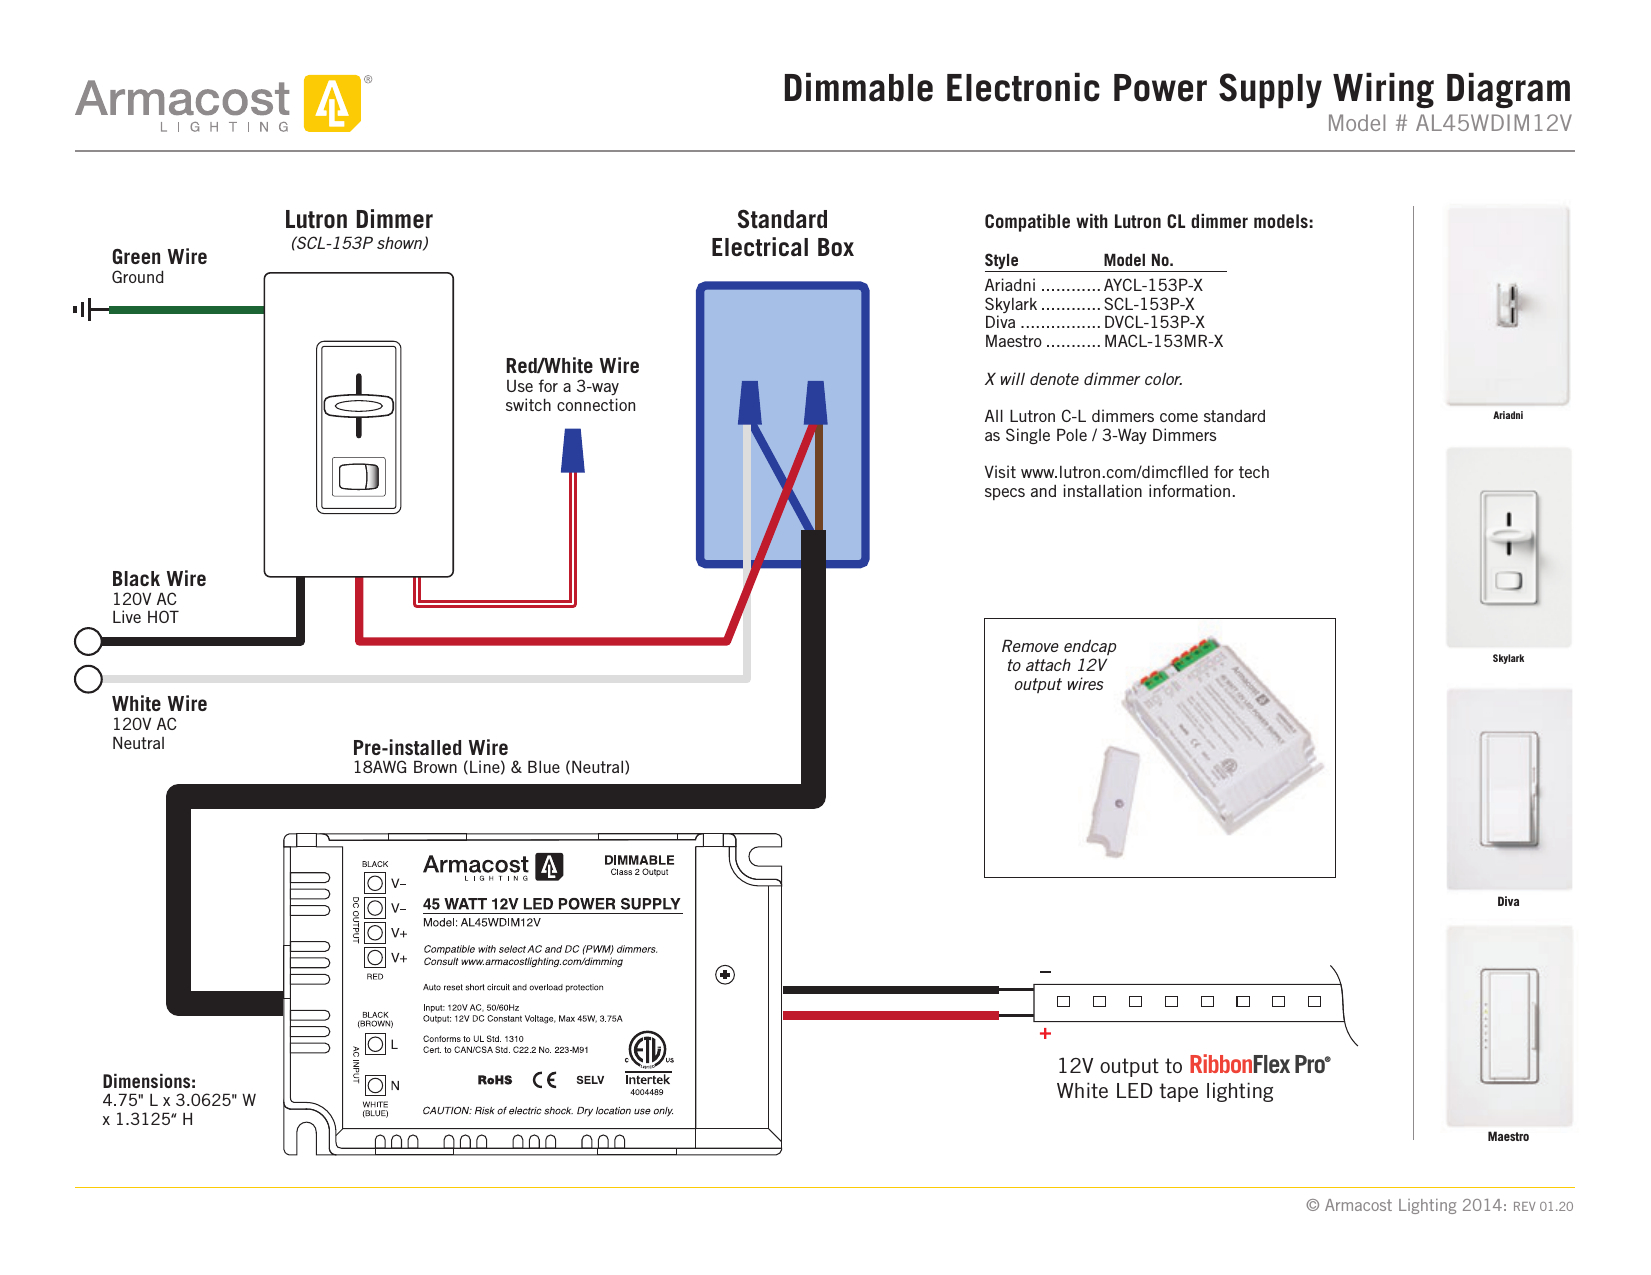 lutron skylark dimmer wiring diagram Download-lutron diva cl wiring diagram Collection lutron skylark dimmer wiring diagram Unique Lutron Dimmer Switch 5-d